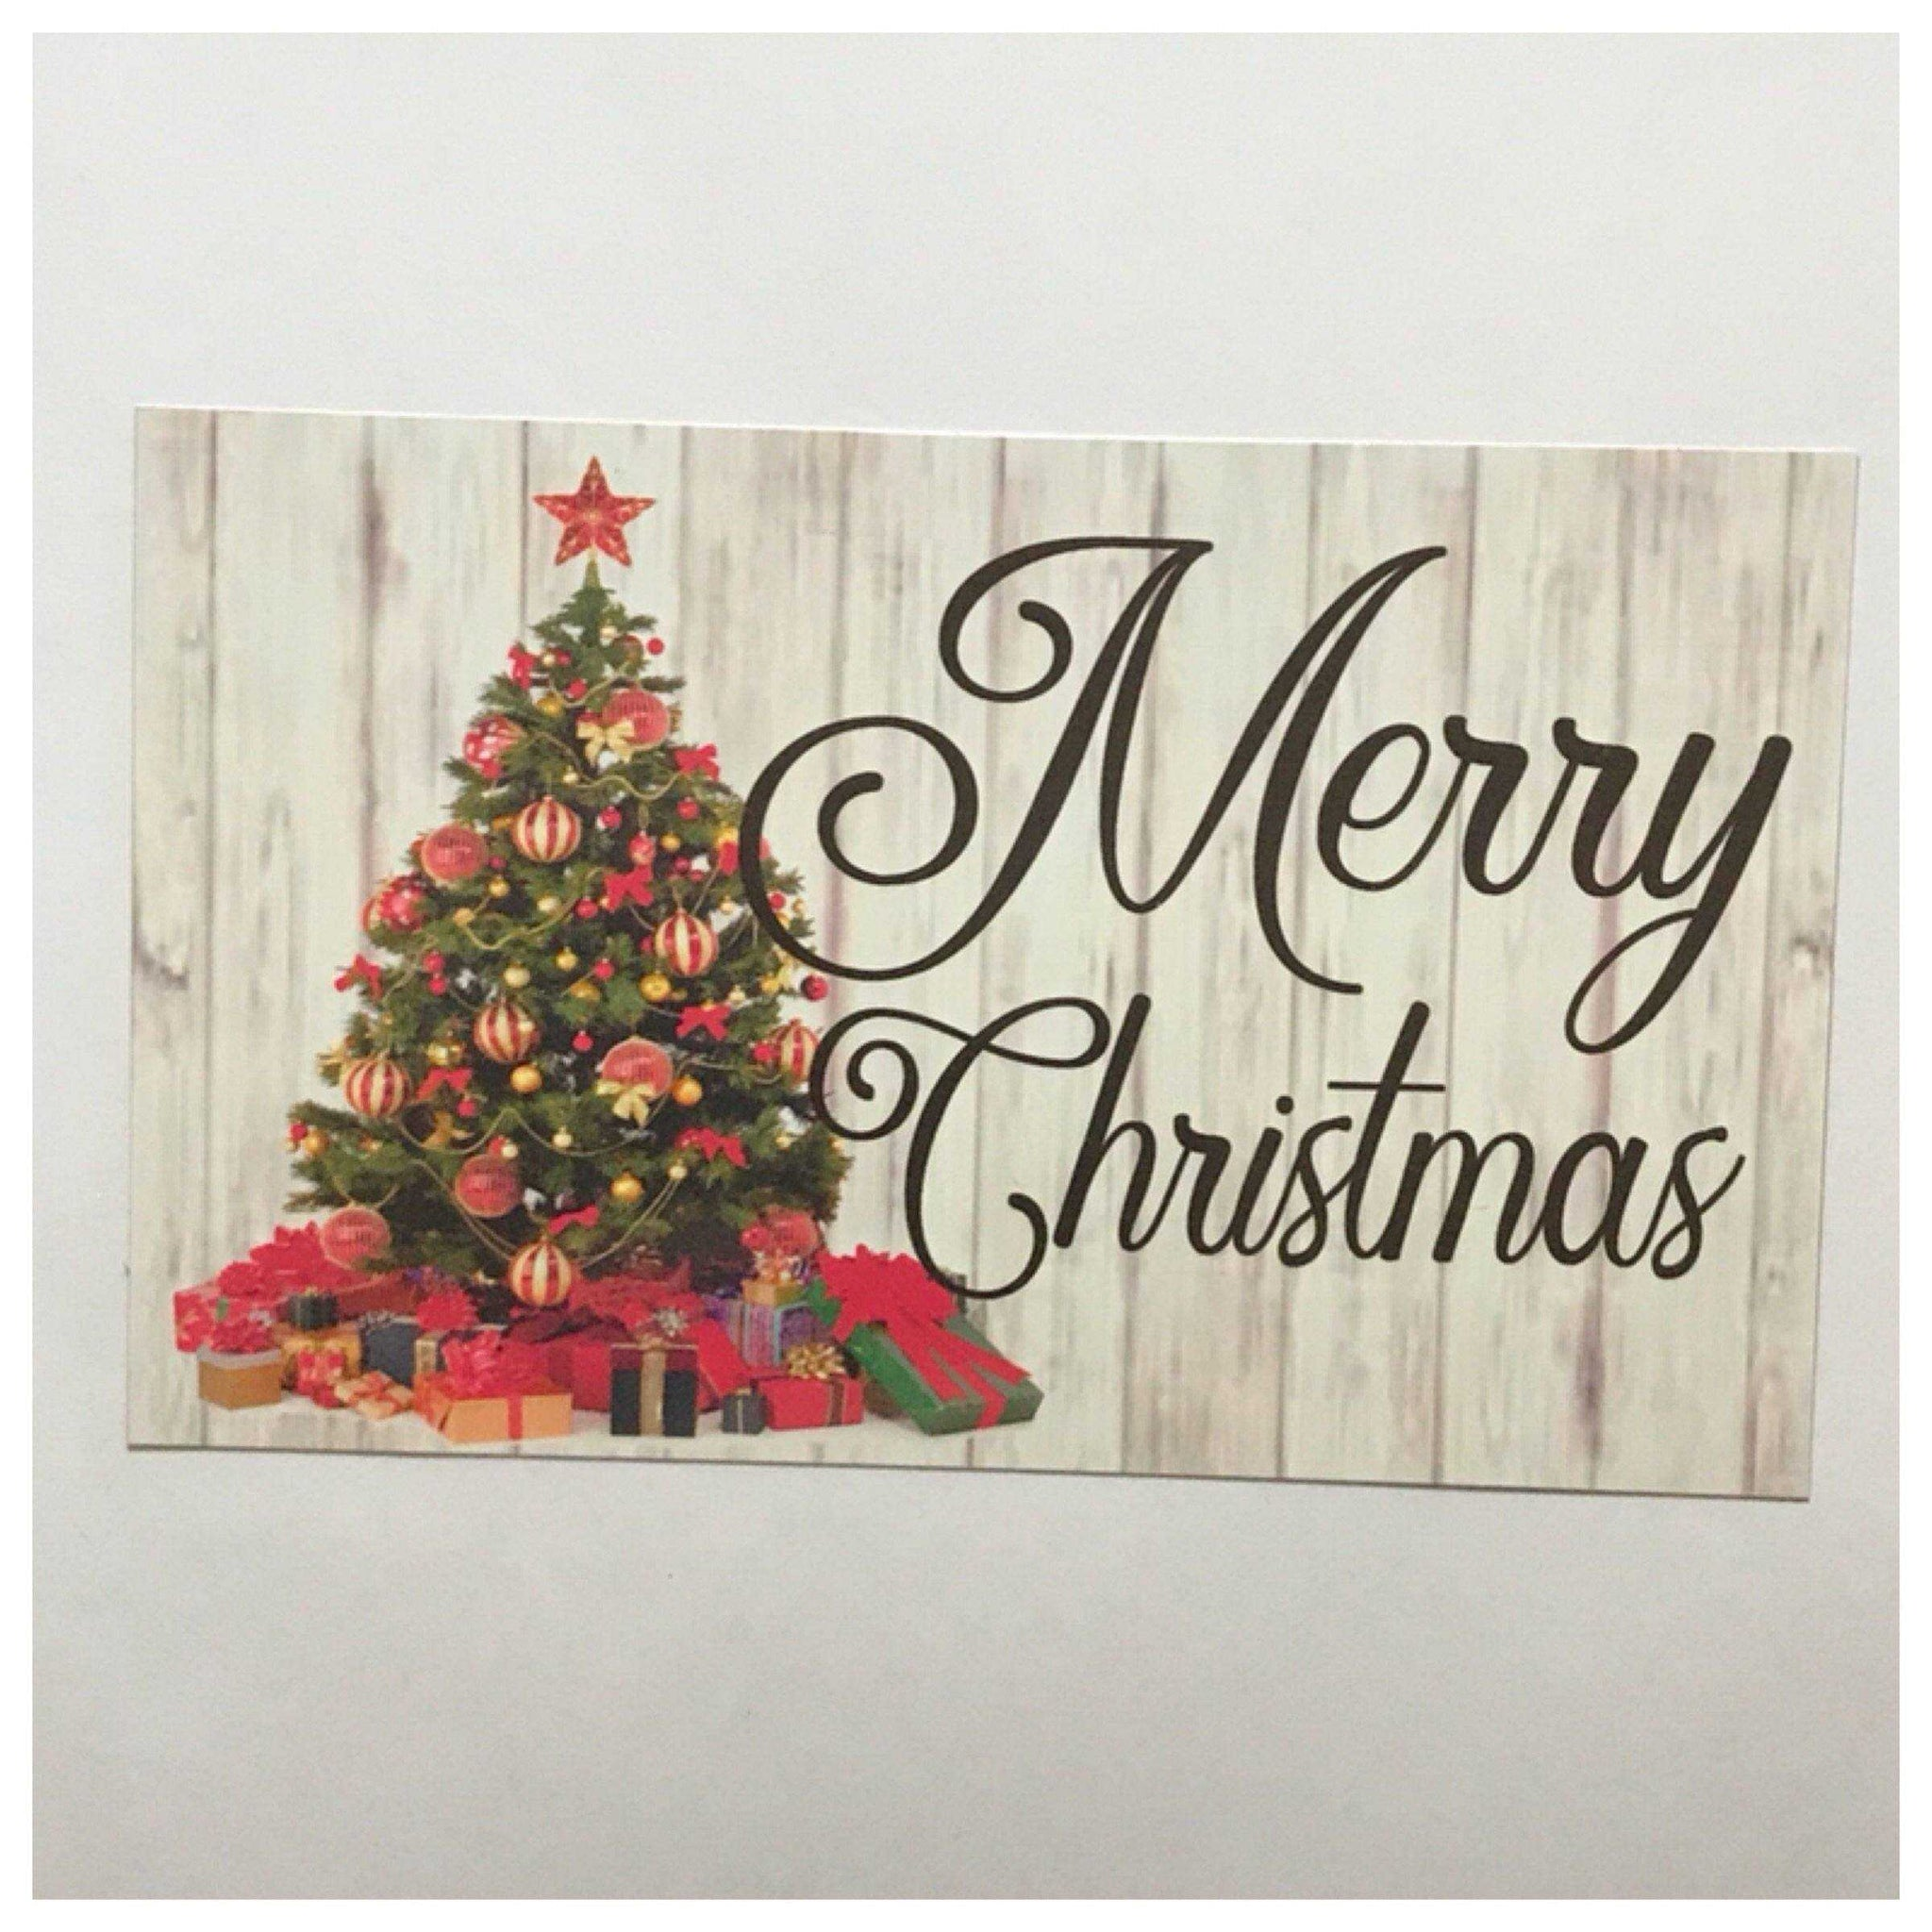 Merry Christmas Tree Sign Wall Plaque or Hanging - The Renmy Store